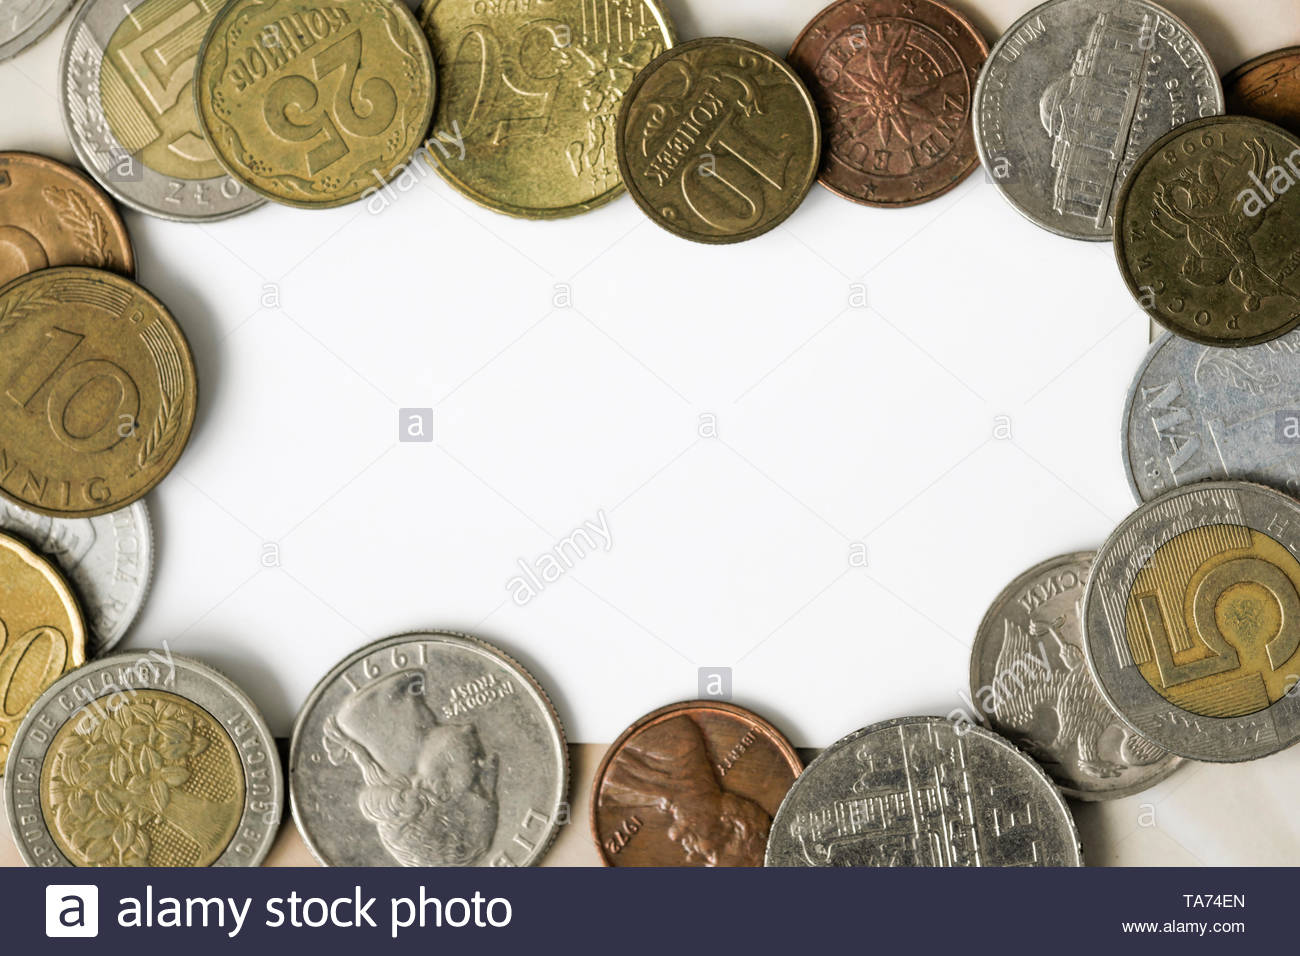 Coins of different countries removed from the top with a white field for posting information - Stock Image